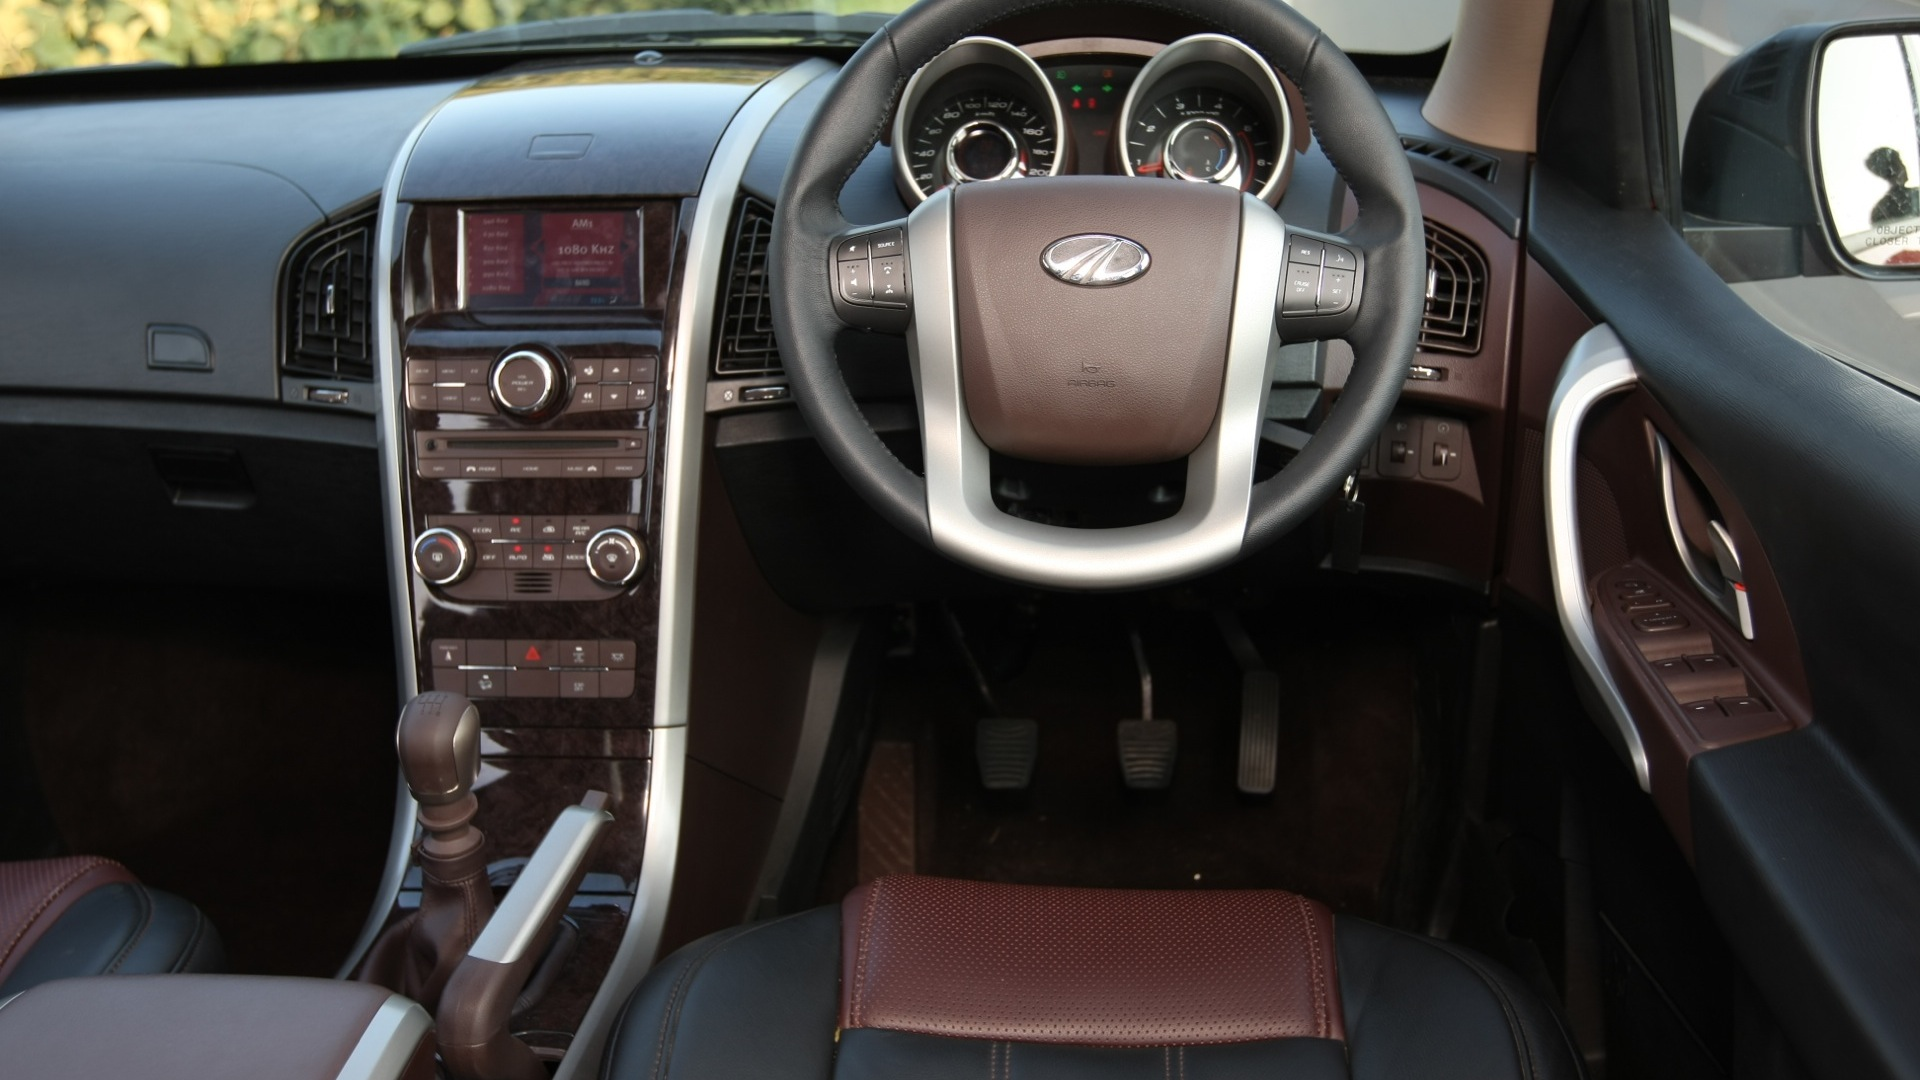 Mahindra-Xuv500-2013-W6-Interior